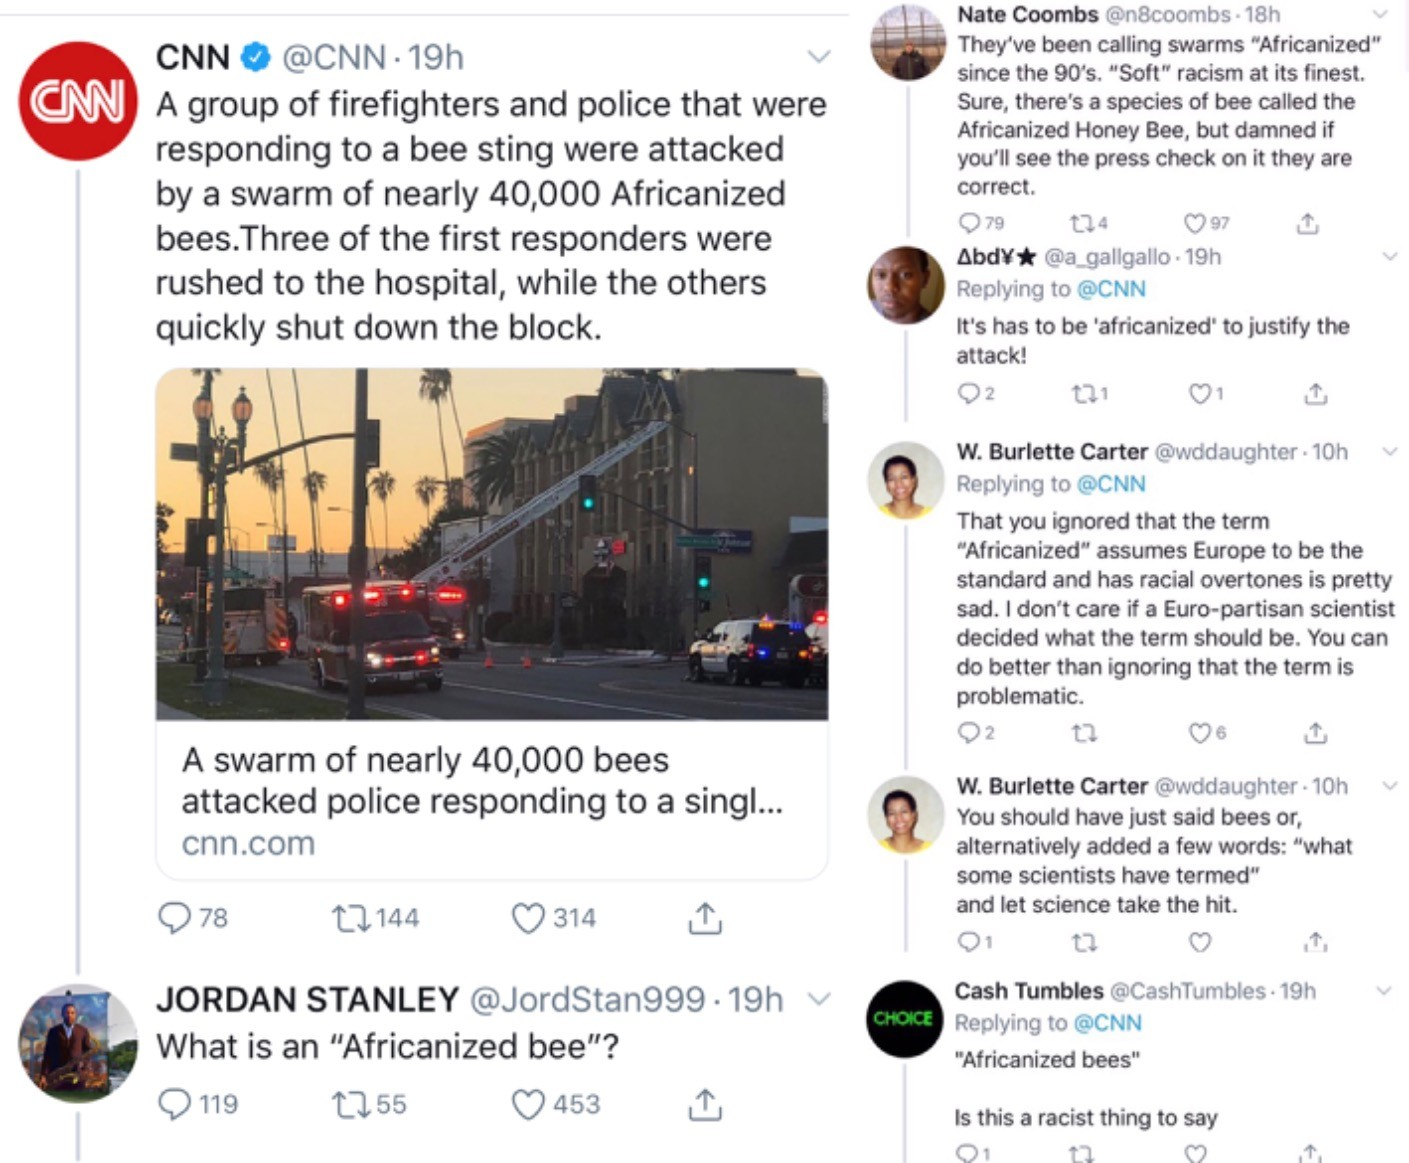 Respondents to CNN Article About 'Africanized Bee Attack' Complain of Racism